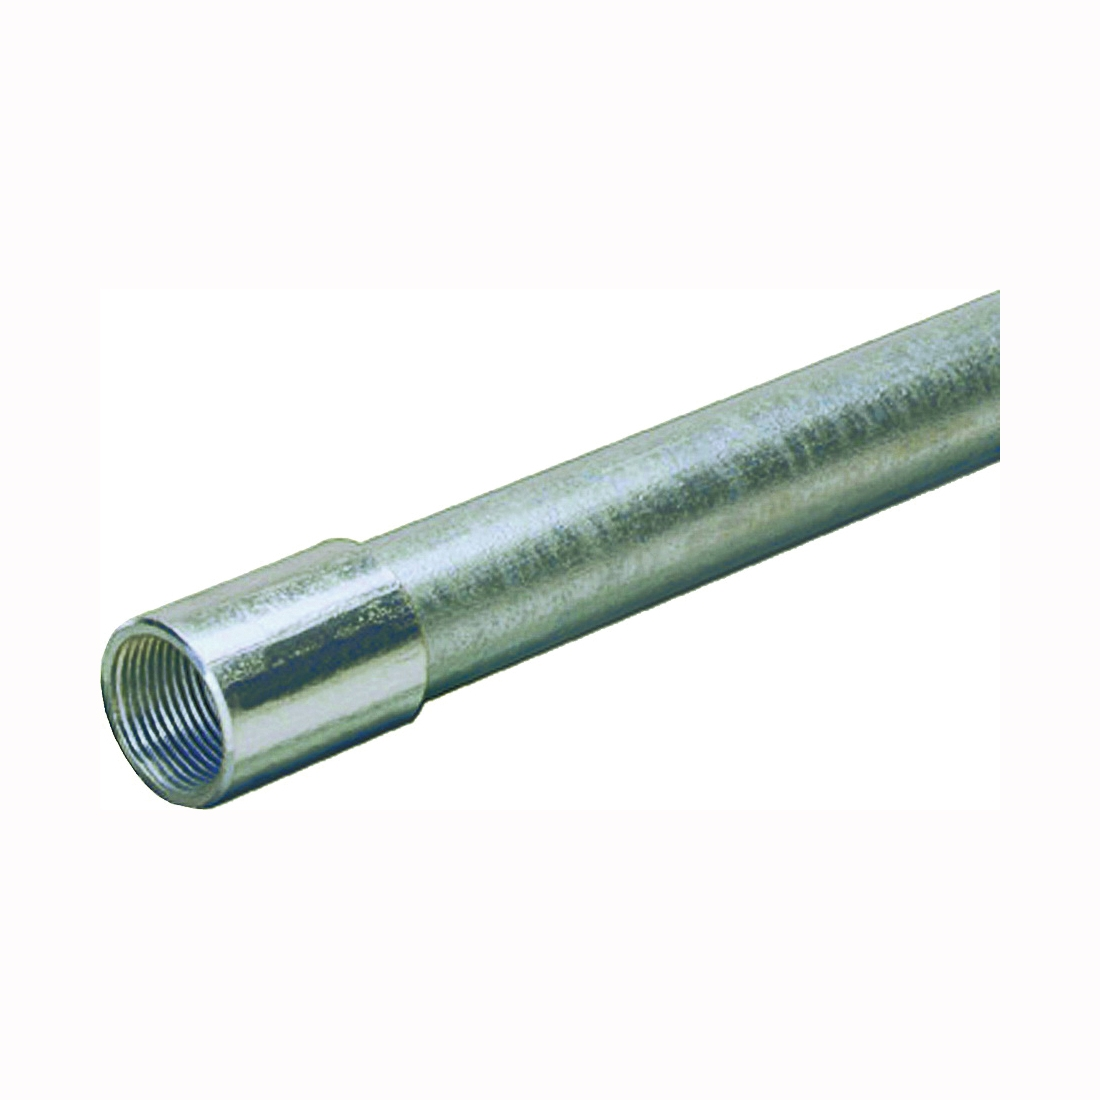 Picture of Allied Tube & Conduit 103077 Rigid Conduit, 1.315 in OD, 10 ft L, 1 in Trade, Galvanized Steel